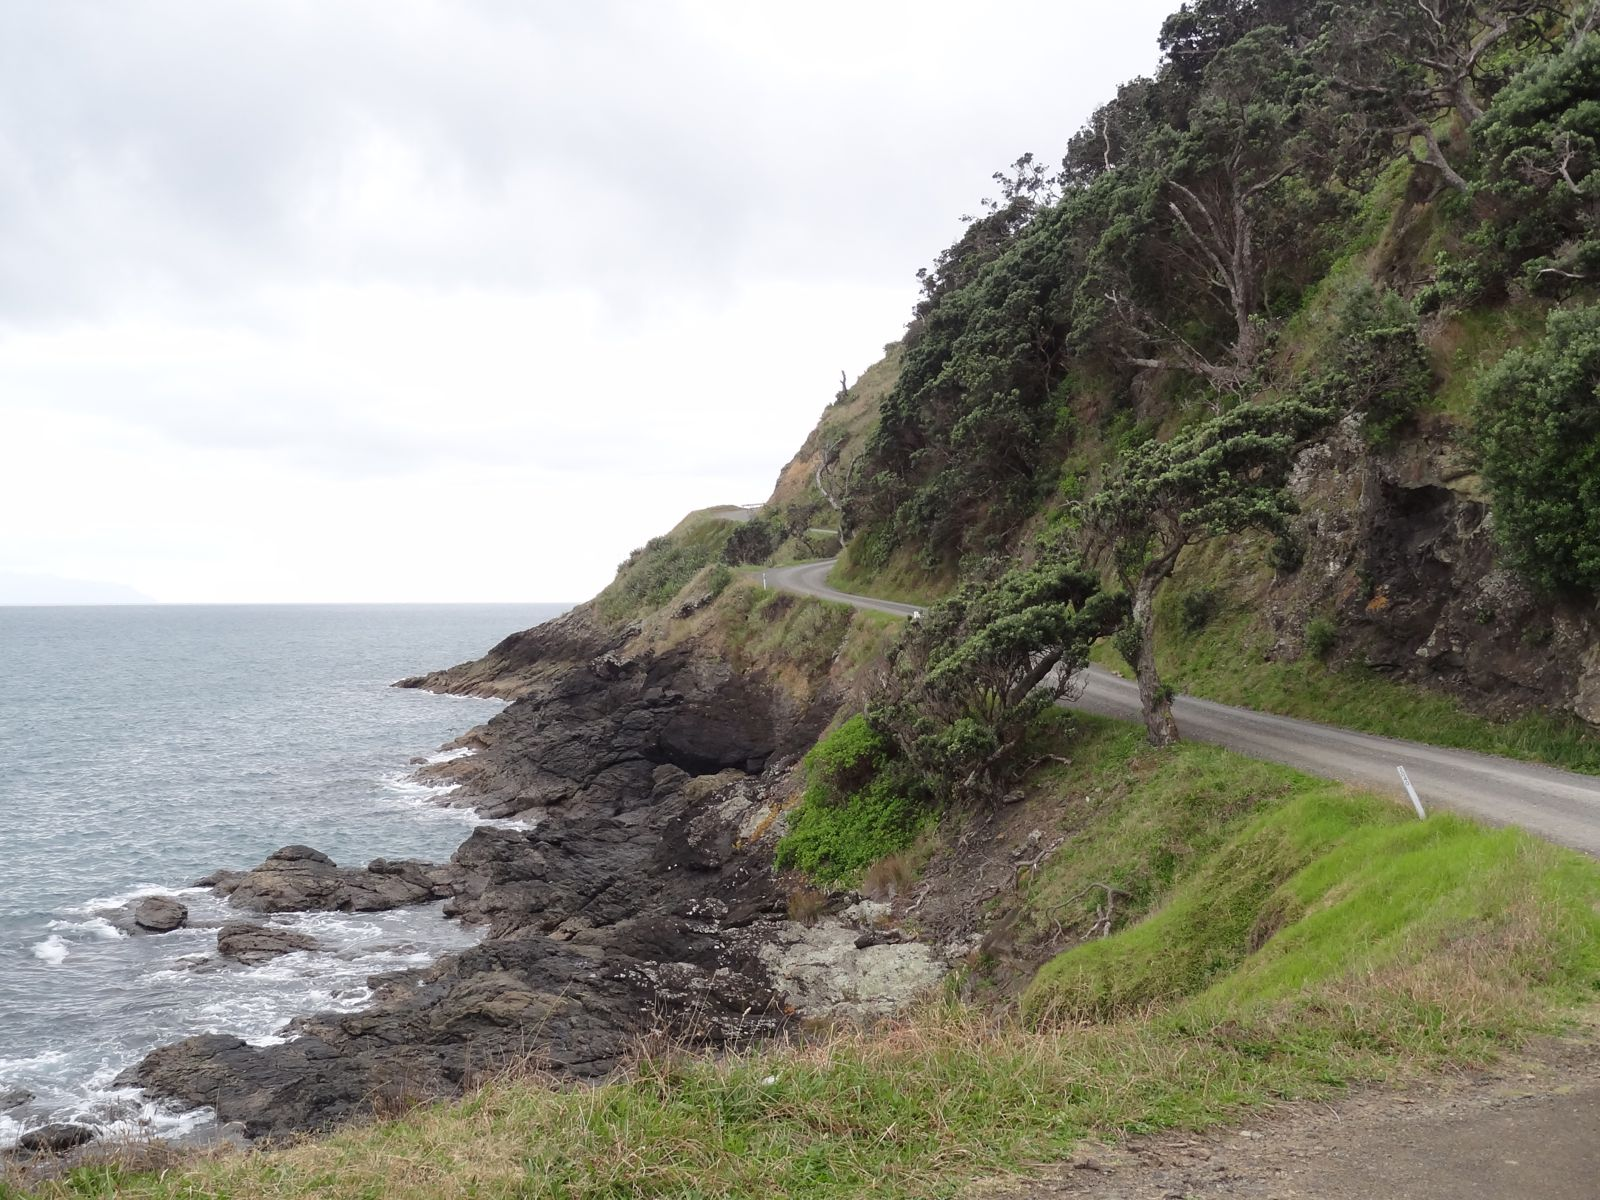 The road hugged the coast most of the way